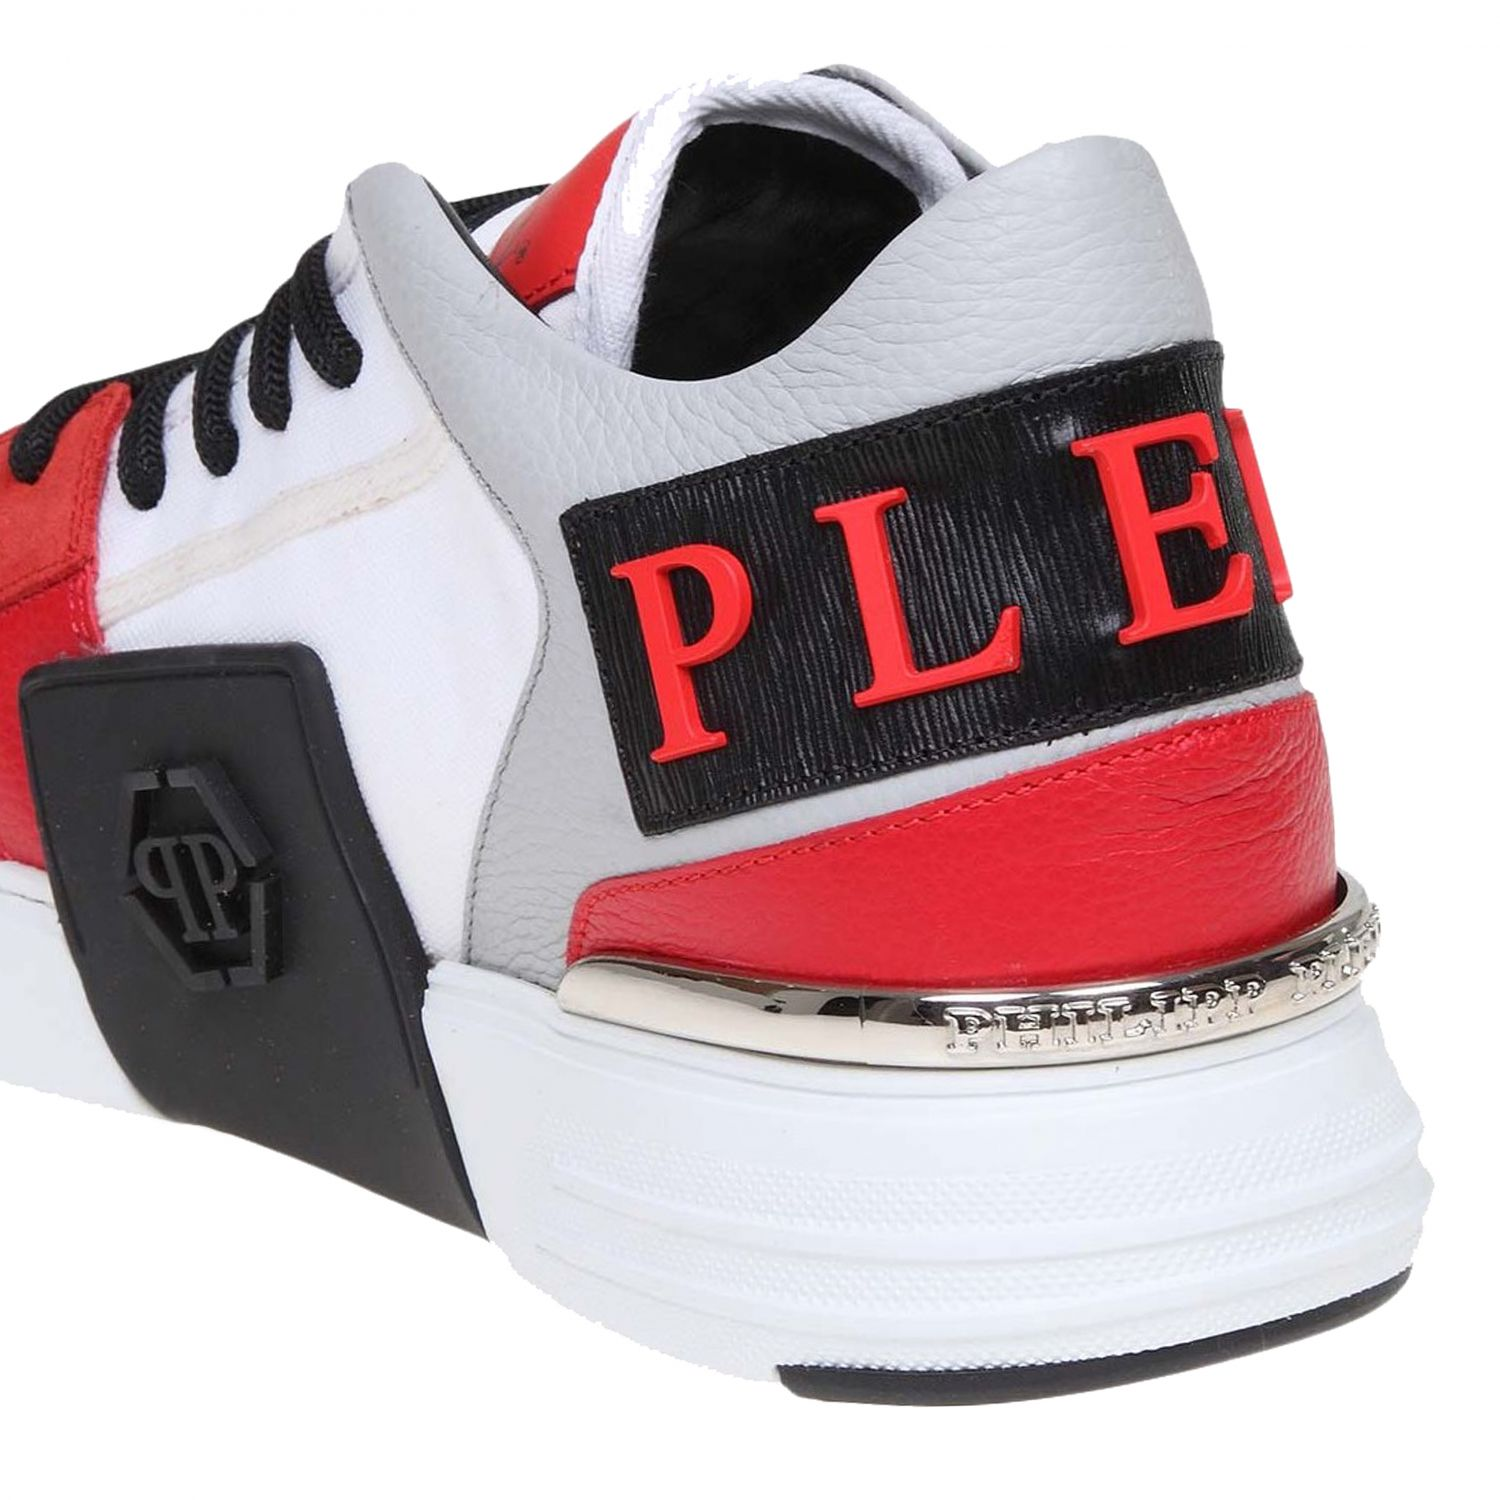 Sneakers men Philipp Plein red 5